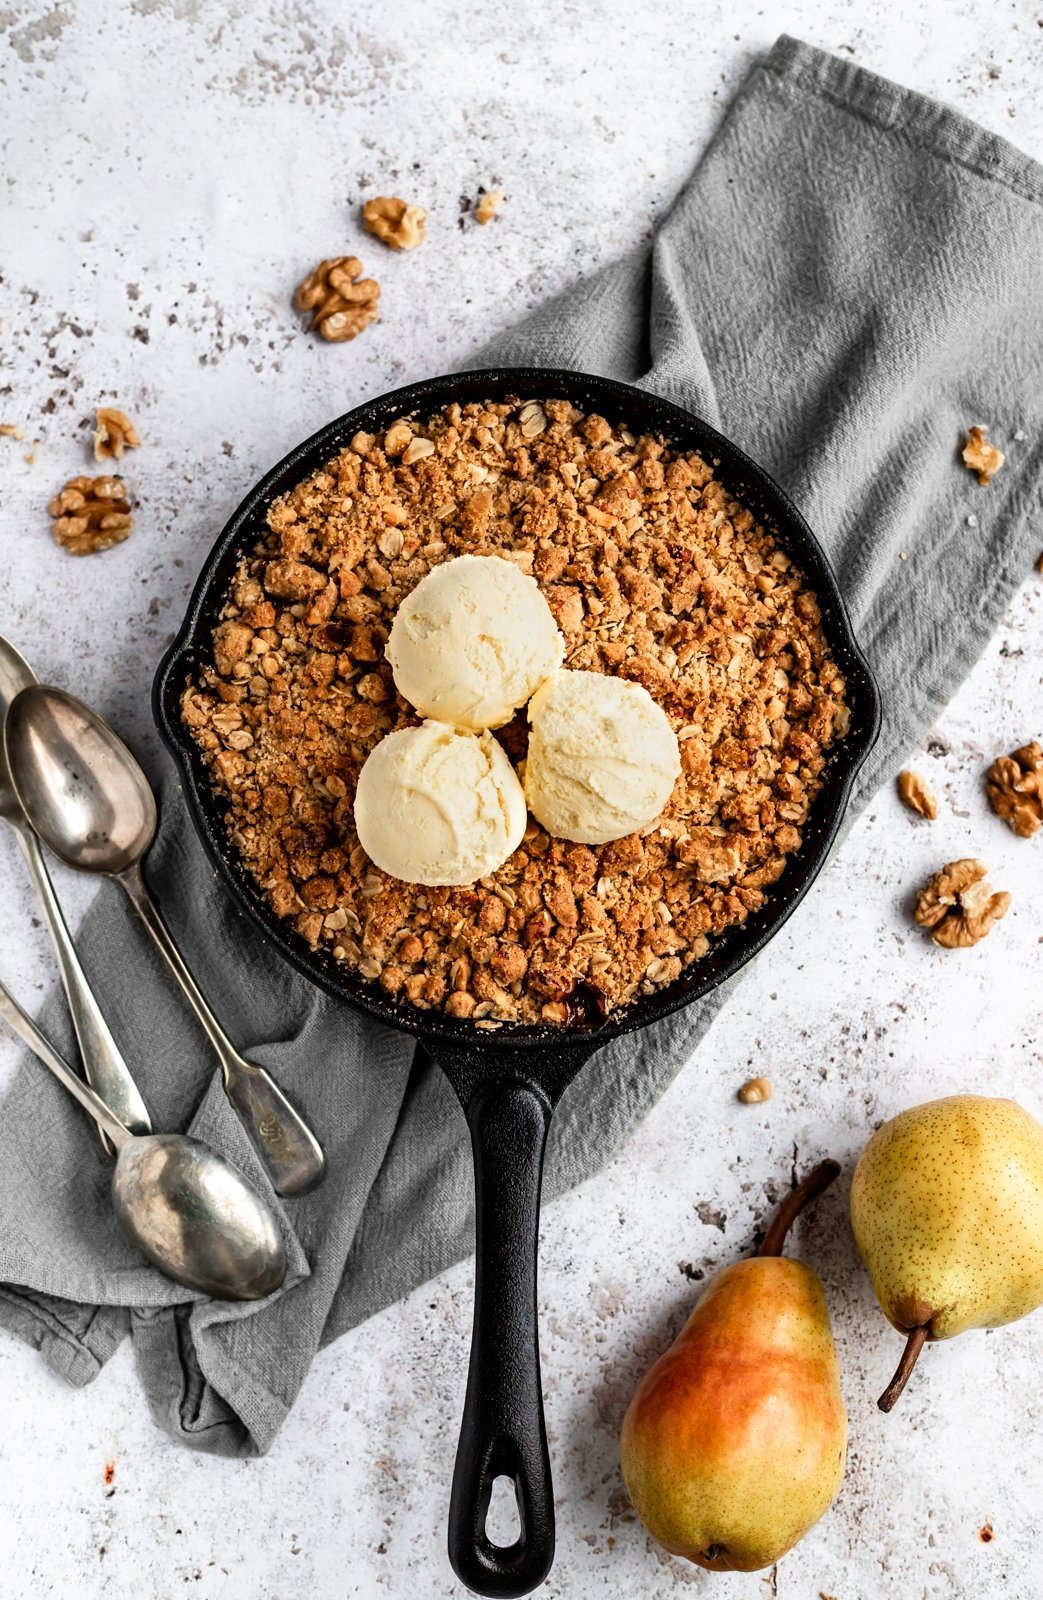 gluten free pear crisp in a skillet with ice cream scoops on top